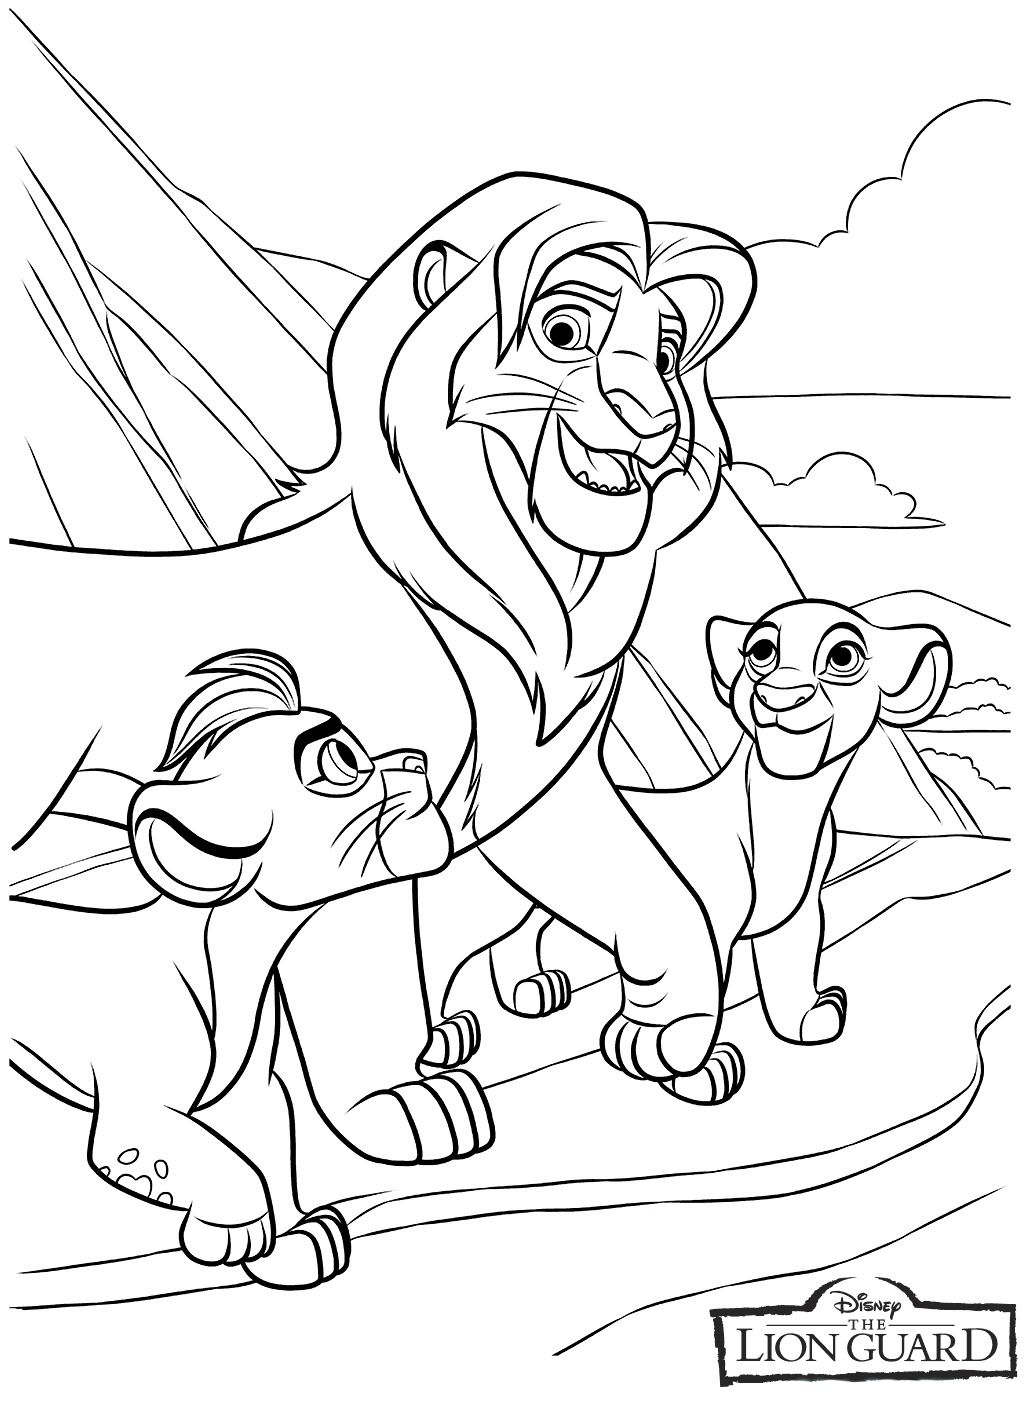 Disney Is At It Again With Lion King S Next Generation Lion Guard Simba And Nala Has A Family Of Cartoon Coloring Pages Family Coloring Pages Coloring Books